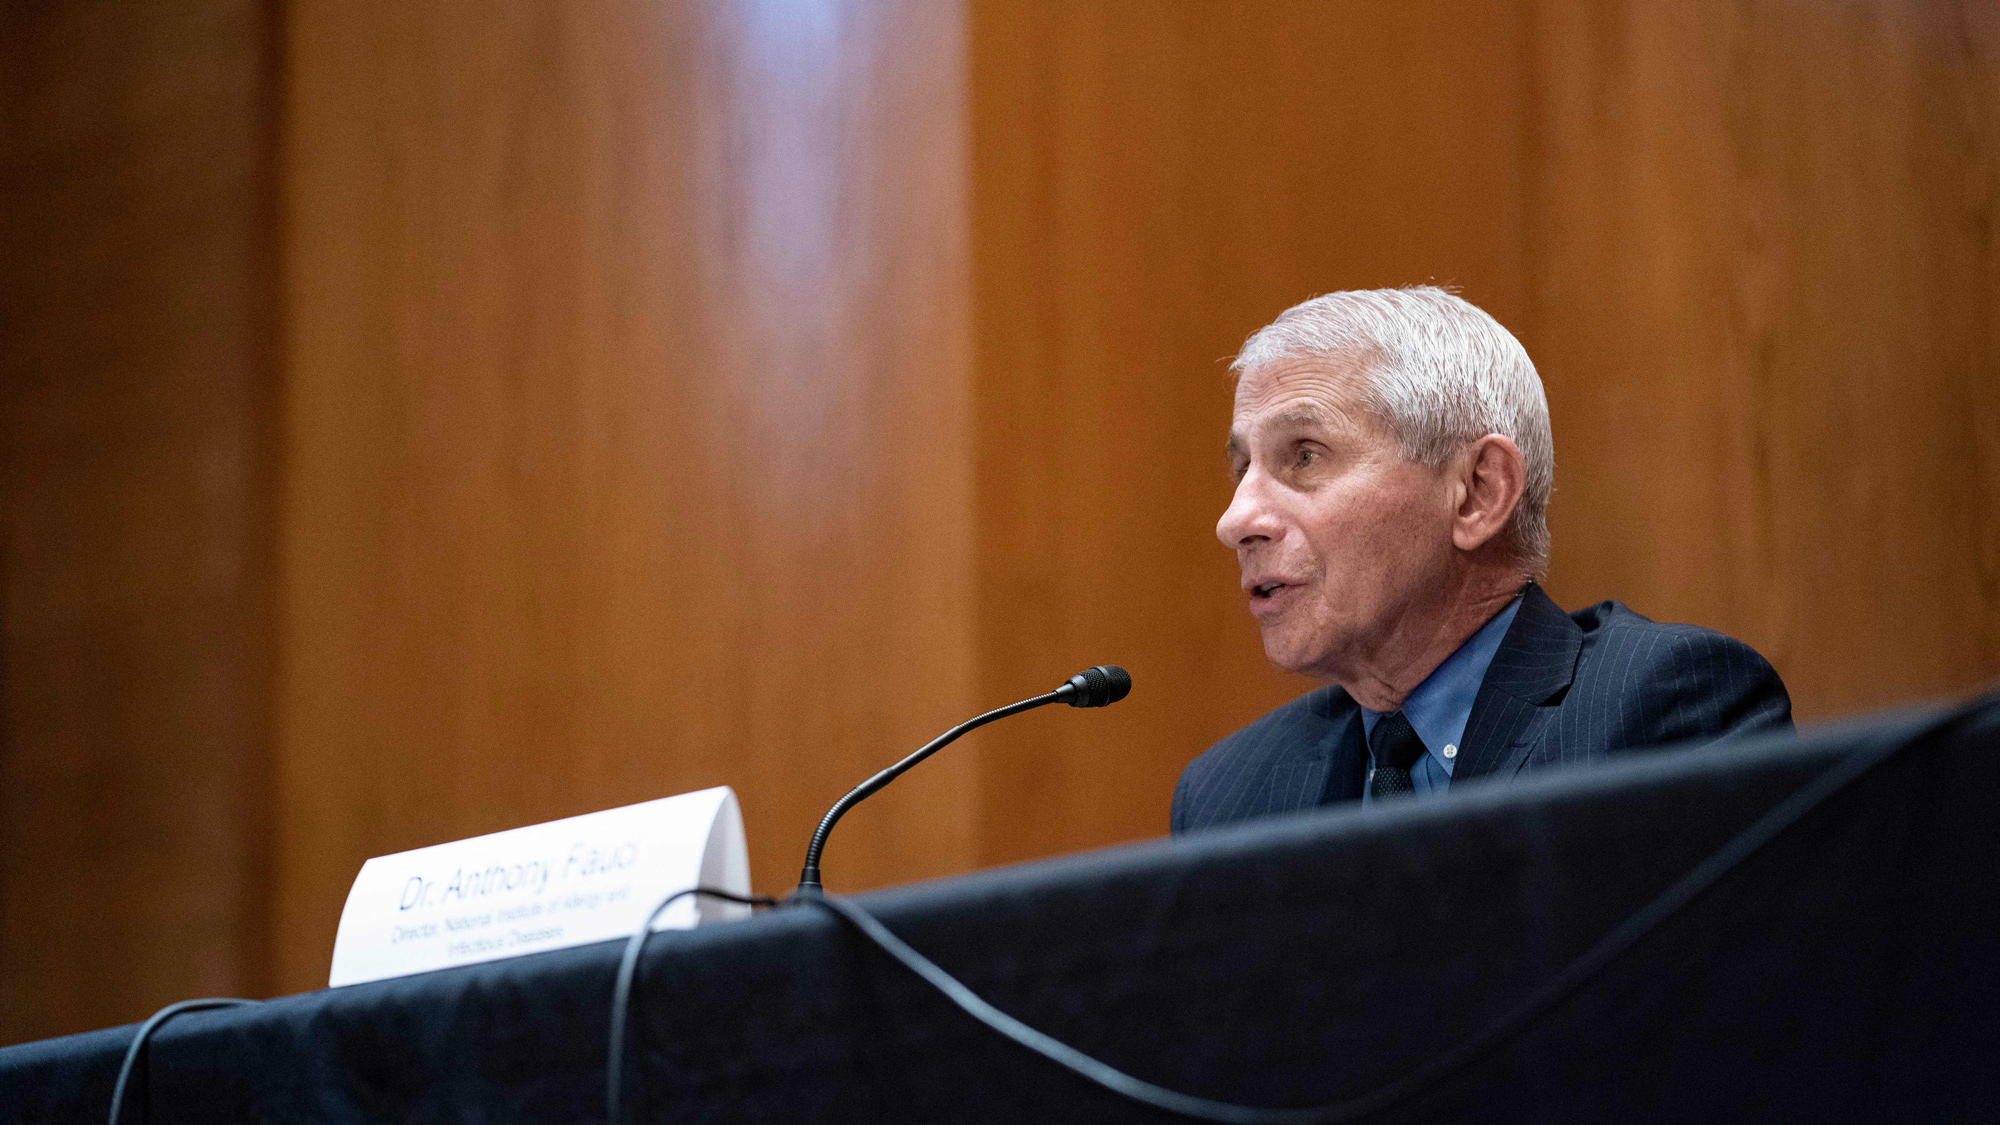 Anthony Fauci, director of the National Institute of Allergy and Infectious Diseases, speaks during a hearing  on Capitol Hill in Washington, DC on May 26.